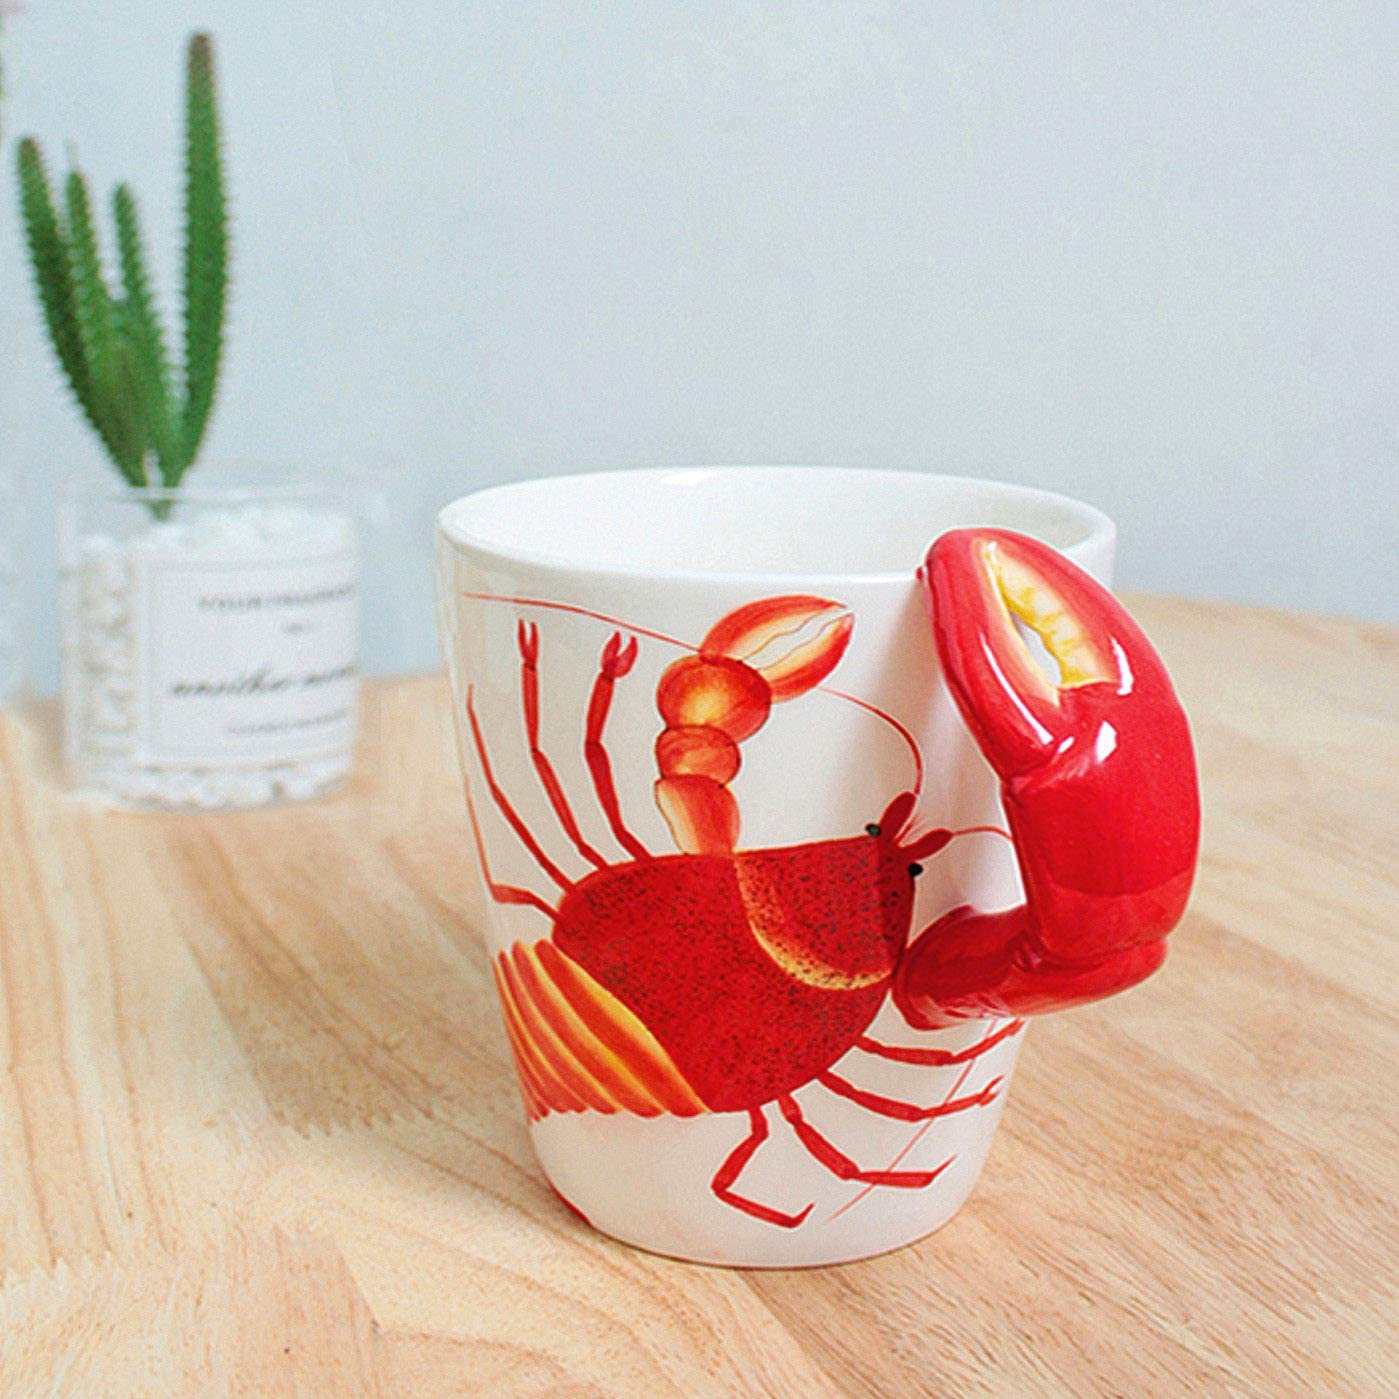 Crab Crab 3D Handle Handmade Large Tea Cup 13.5oz Novelty Funny Hand Painted Holiday and Birthday Gift for Coffee /& Tea Lovers Unique Ideal Gifts Ceramics Cup